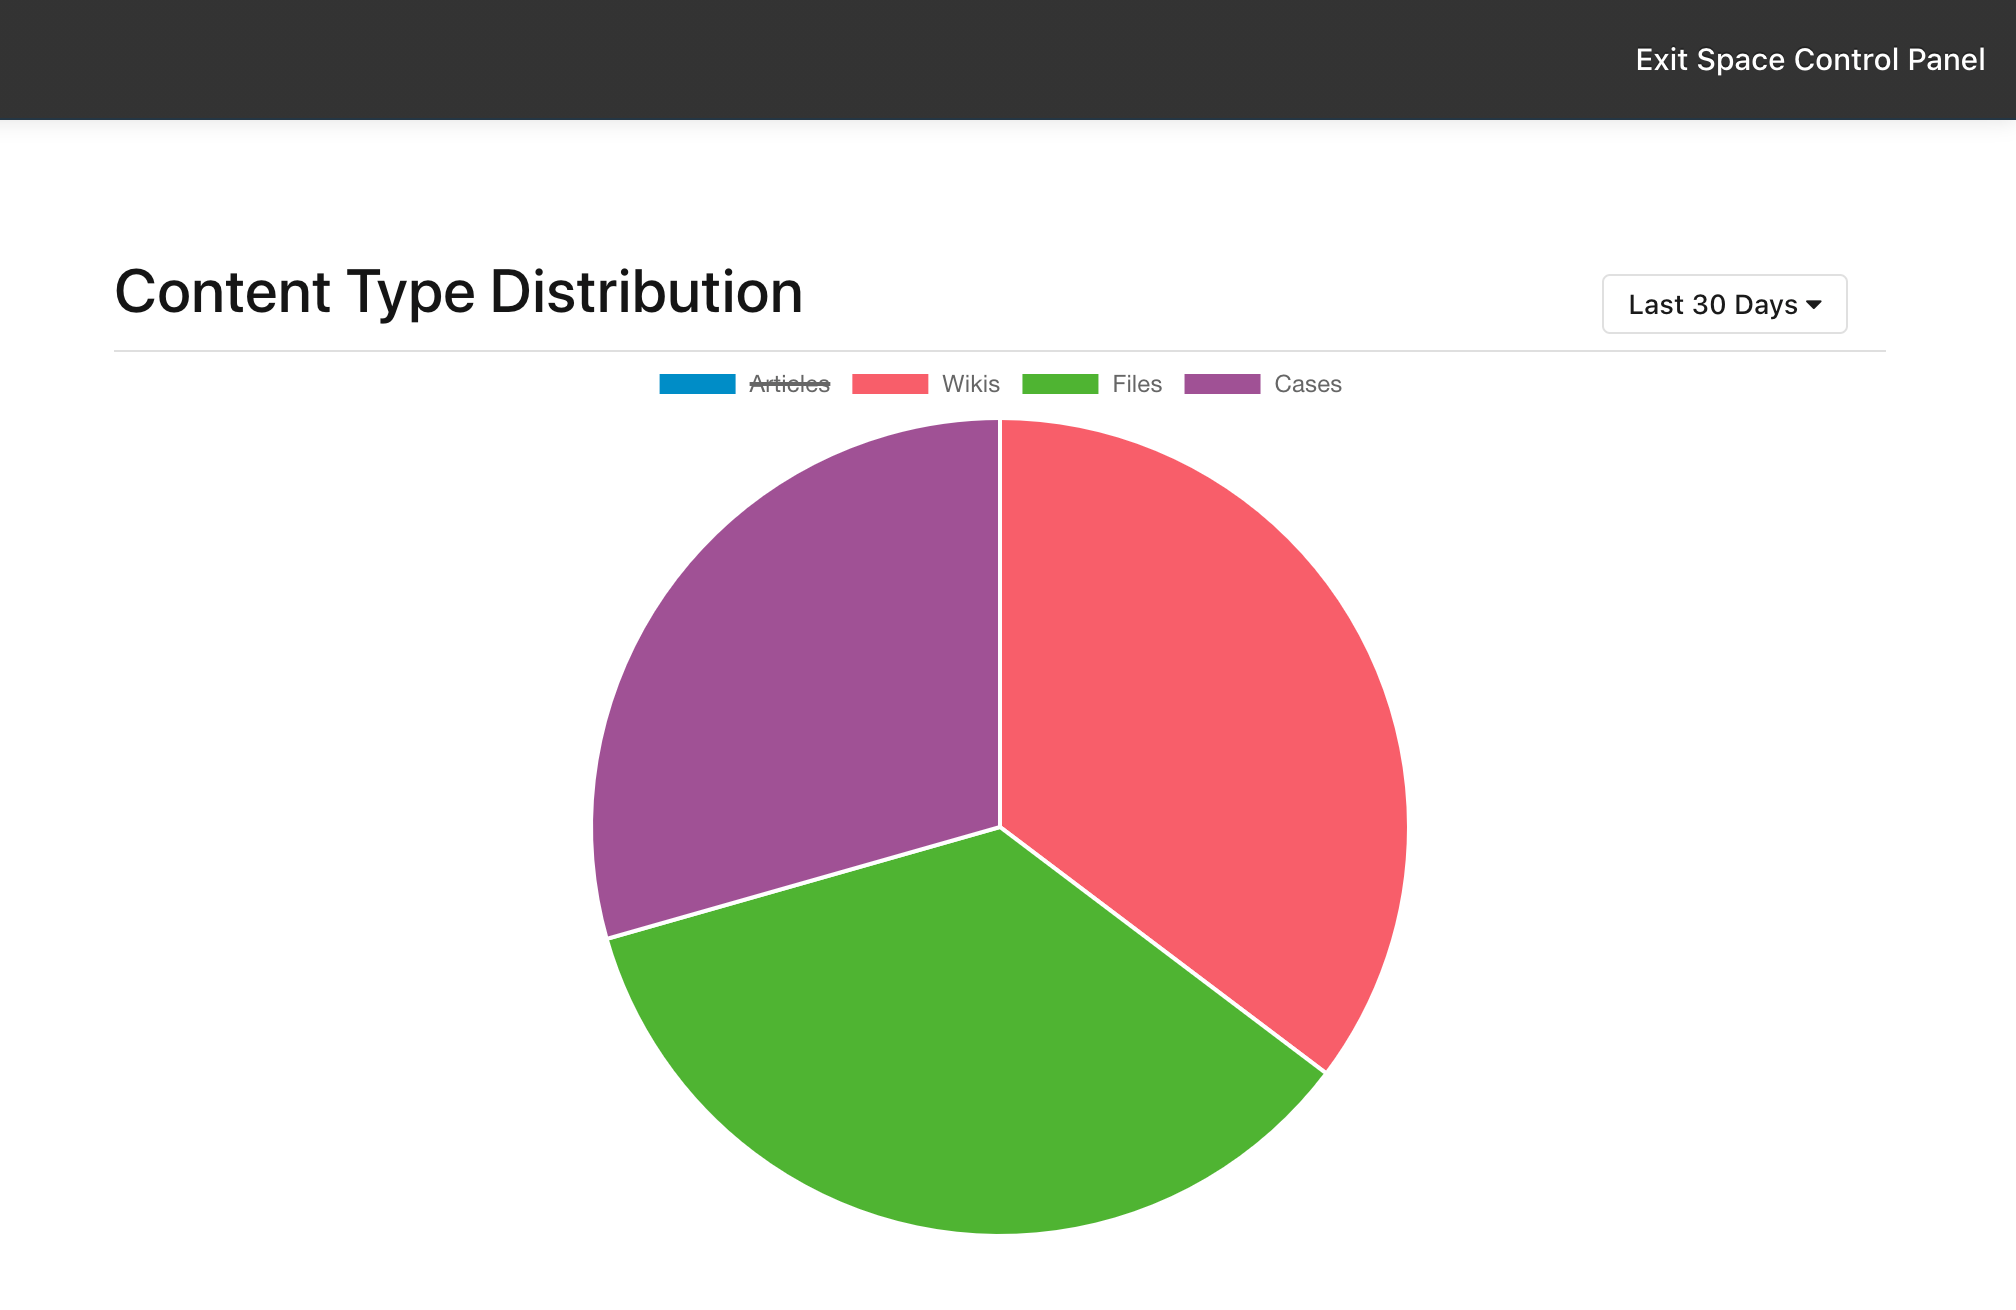 Content type distribution chart with articles excluded